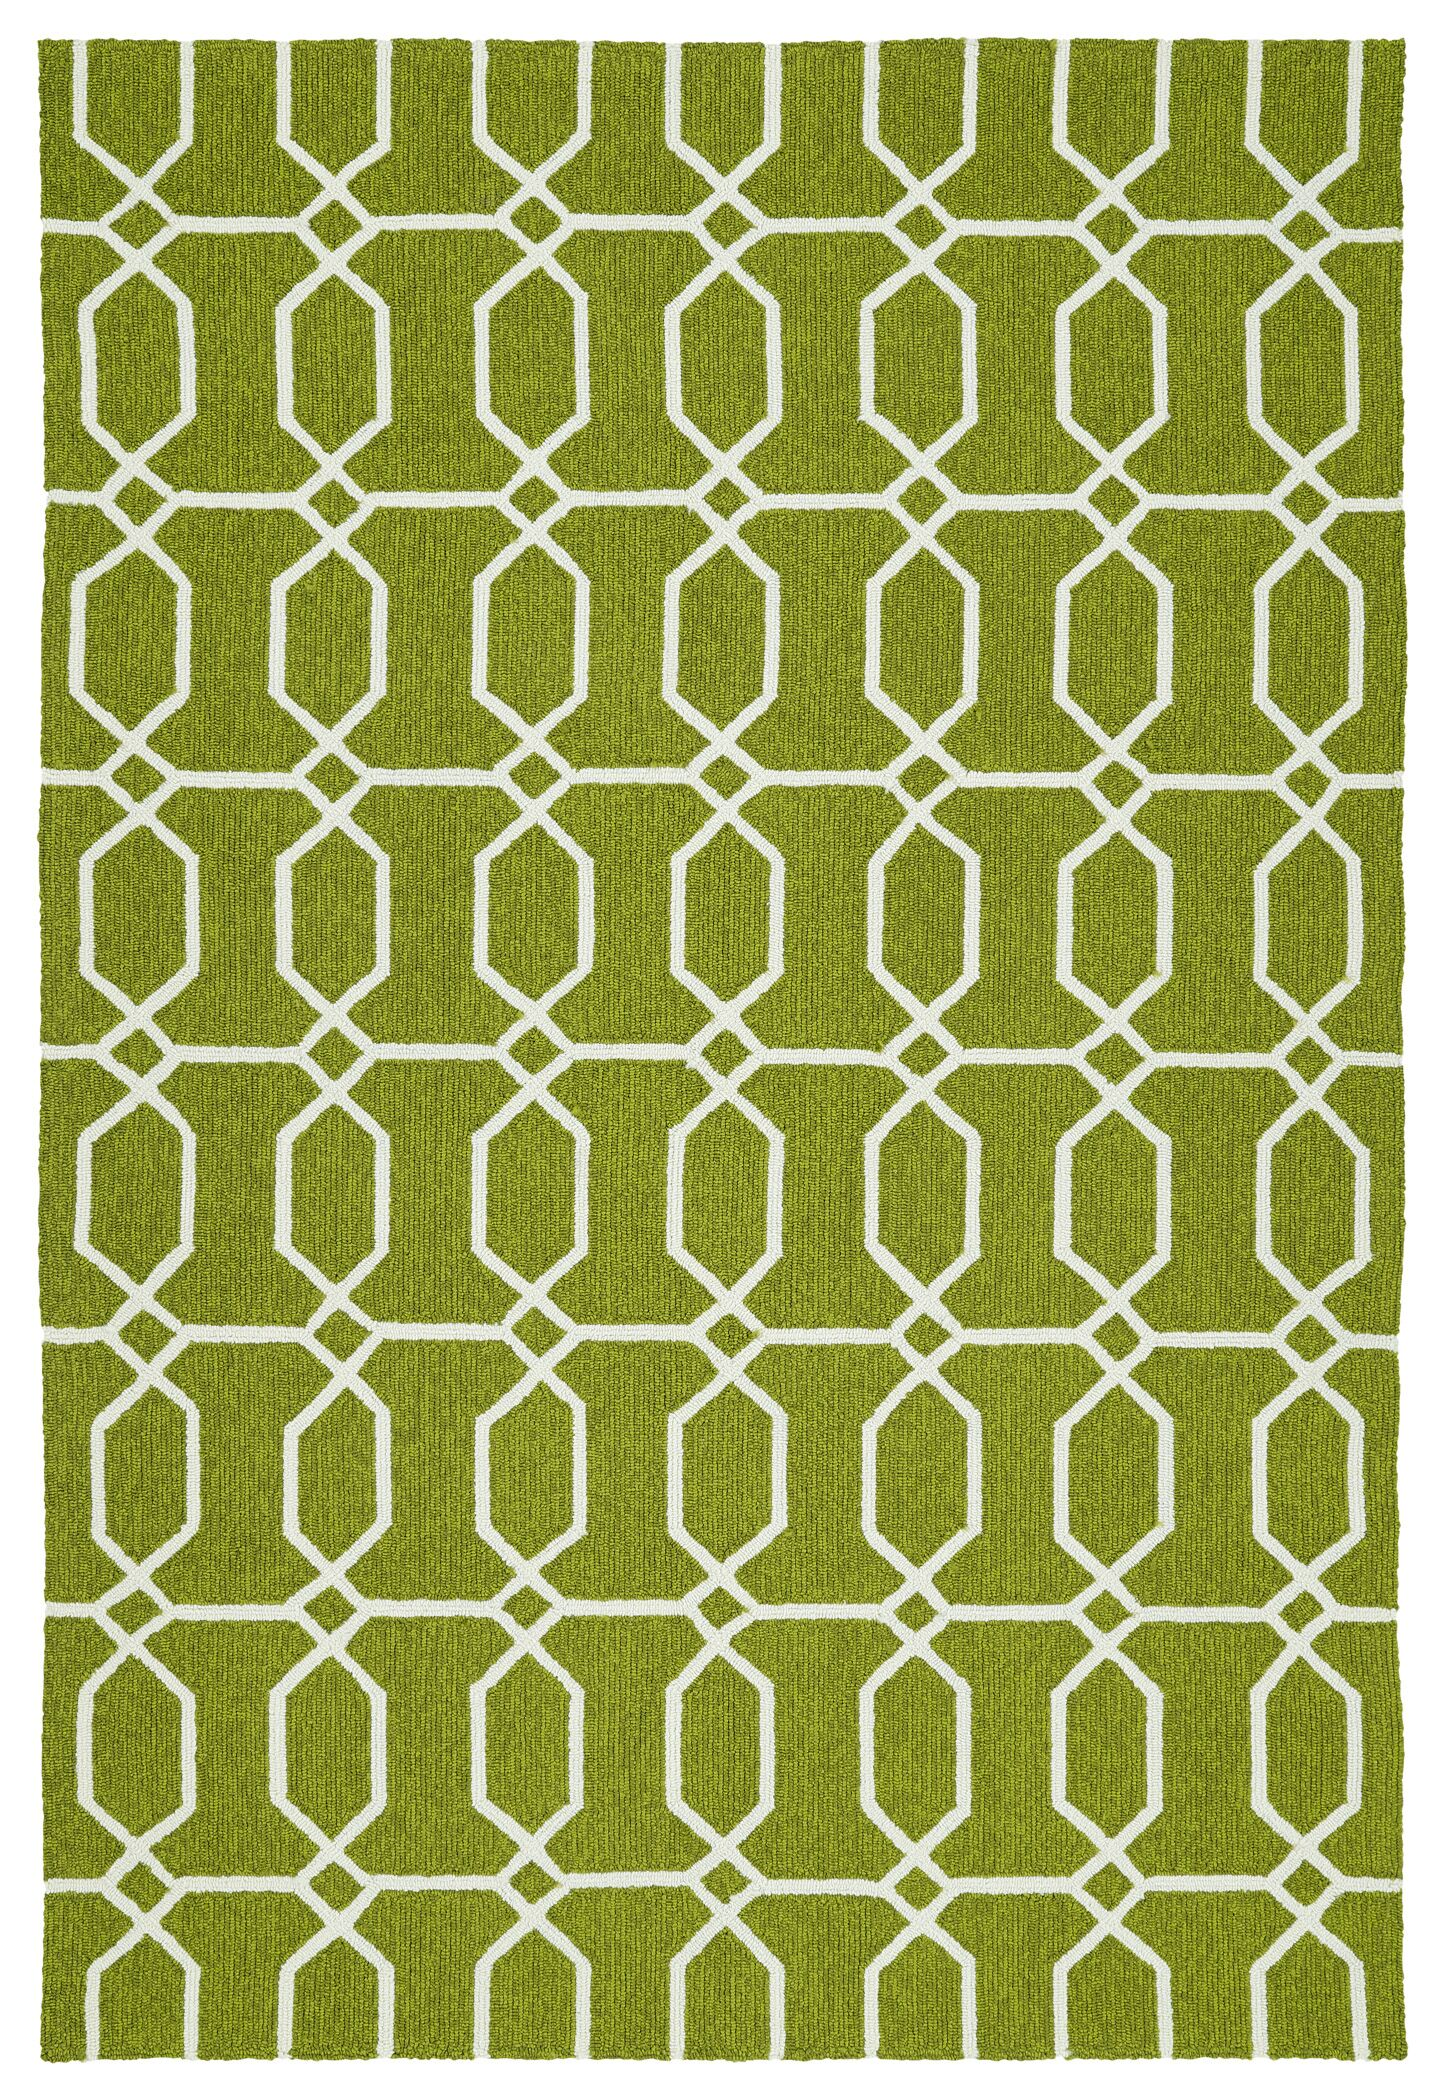 Stepanie Green/White Indoor/Outdoor Area Rug Rug Size: Rectangle 8' x 10'